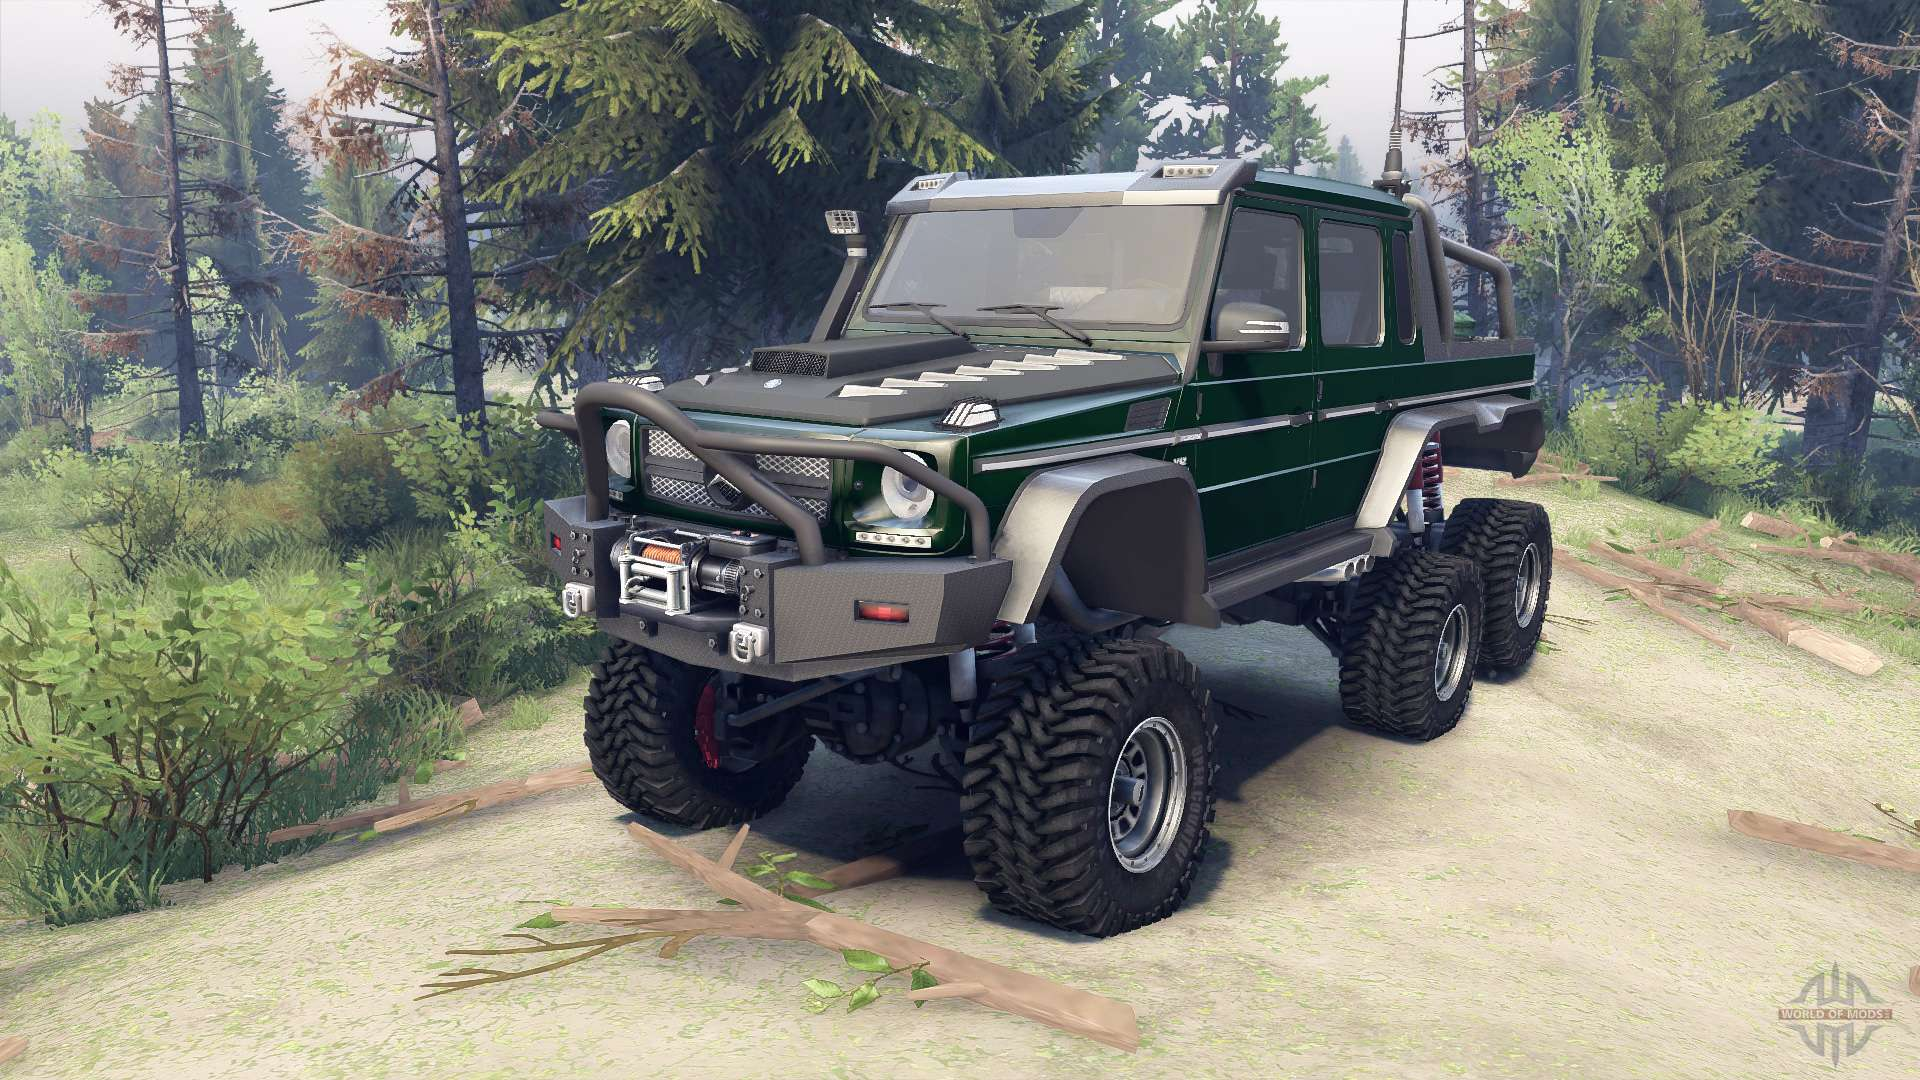 mercedes benz for spintires download for free \u2014 page 2mercedes benz g65 amg 6x6 final dark green for spin tires